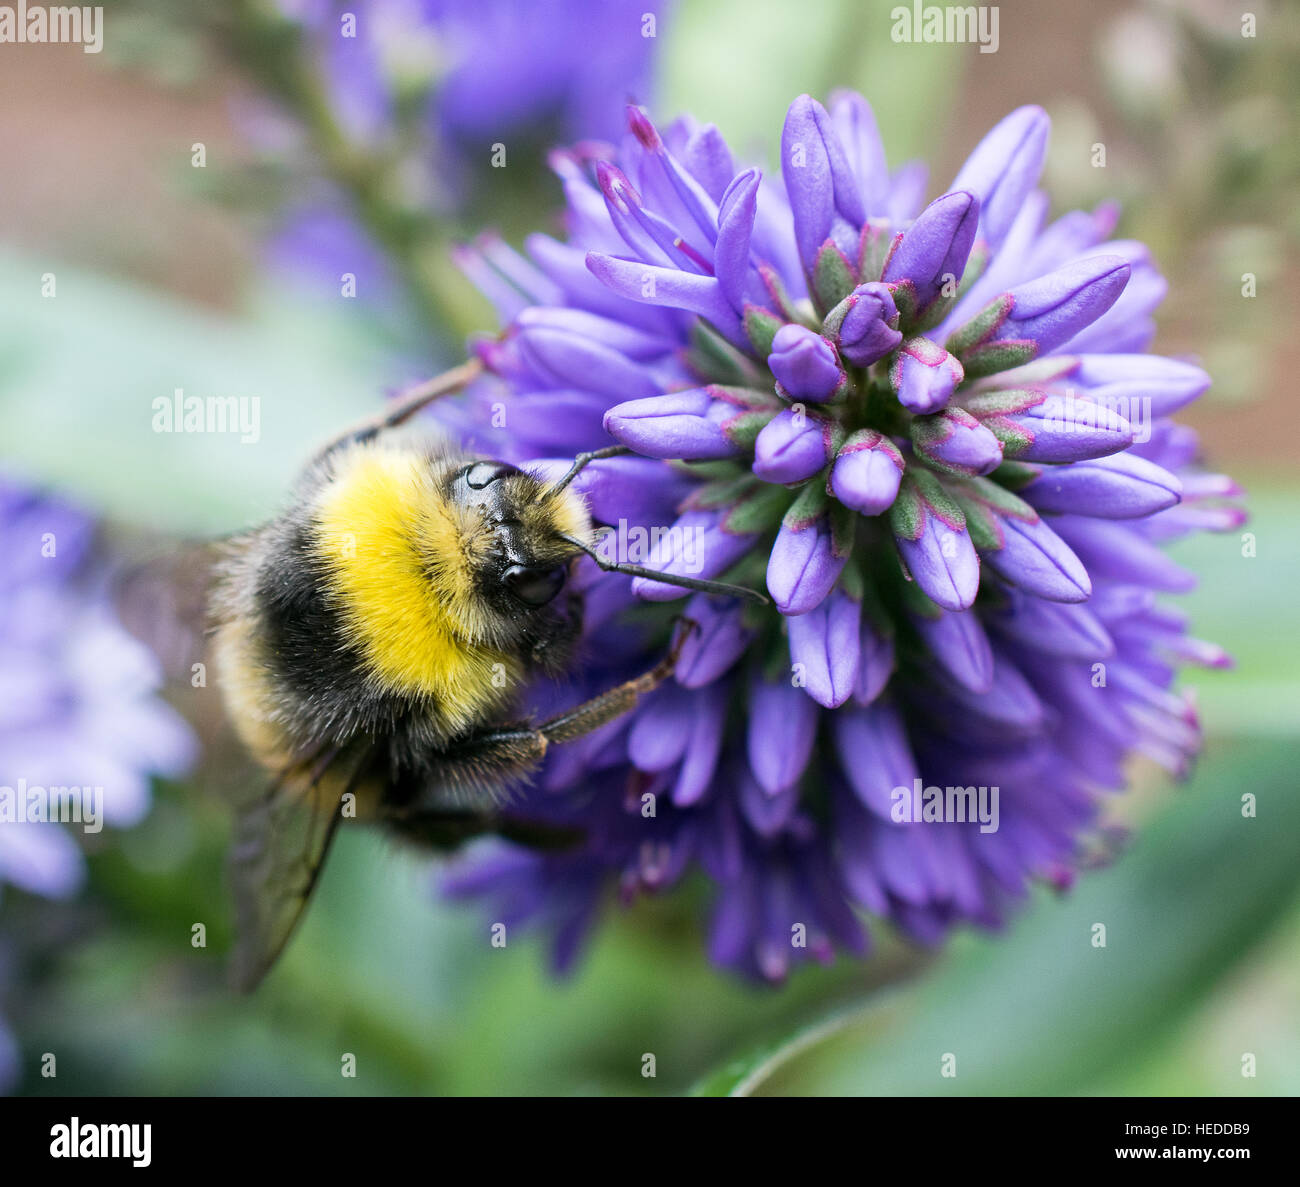 Close up of a bee collecting nectar from a purple flowerhead Stock Photo